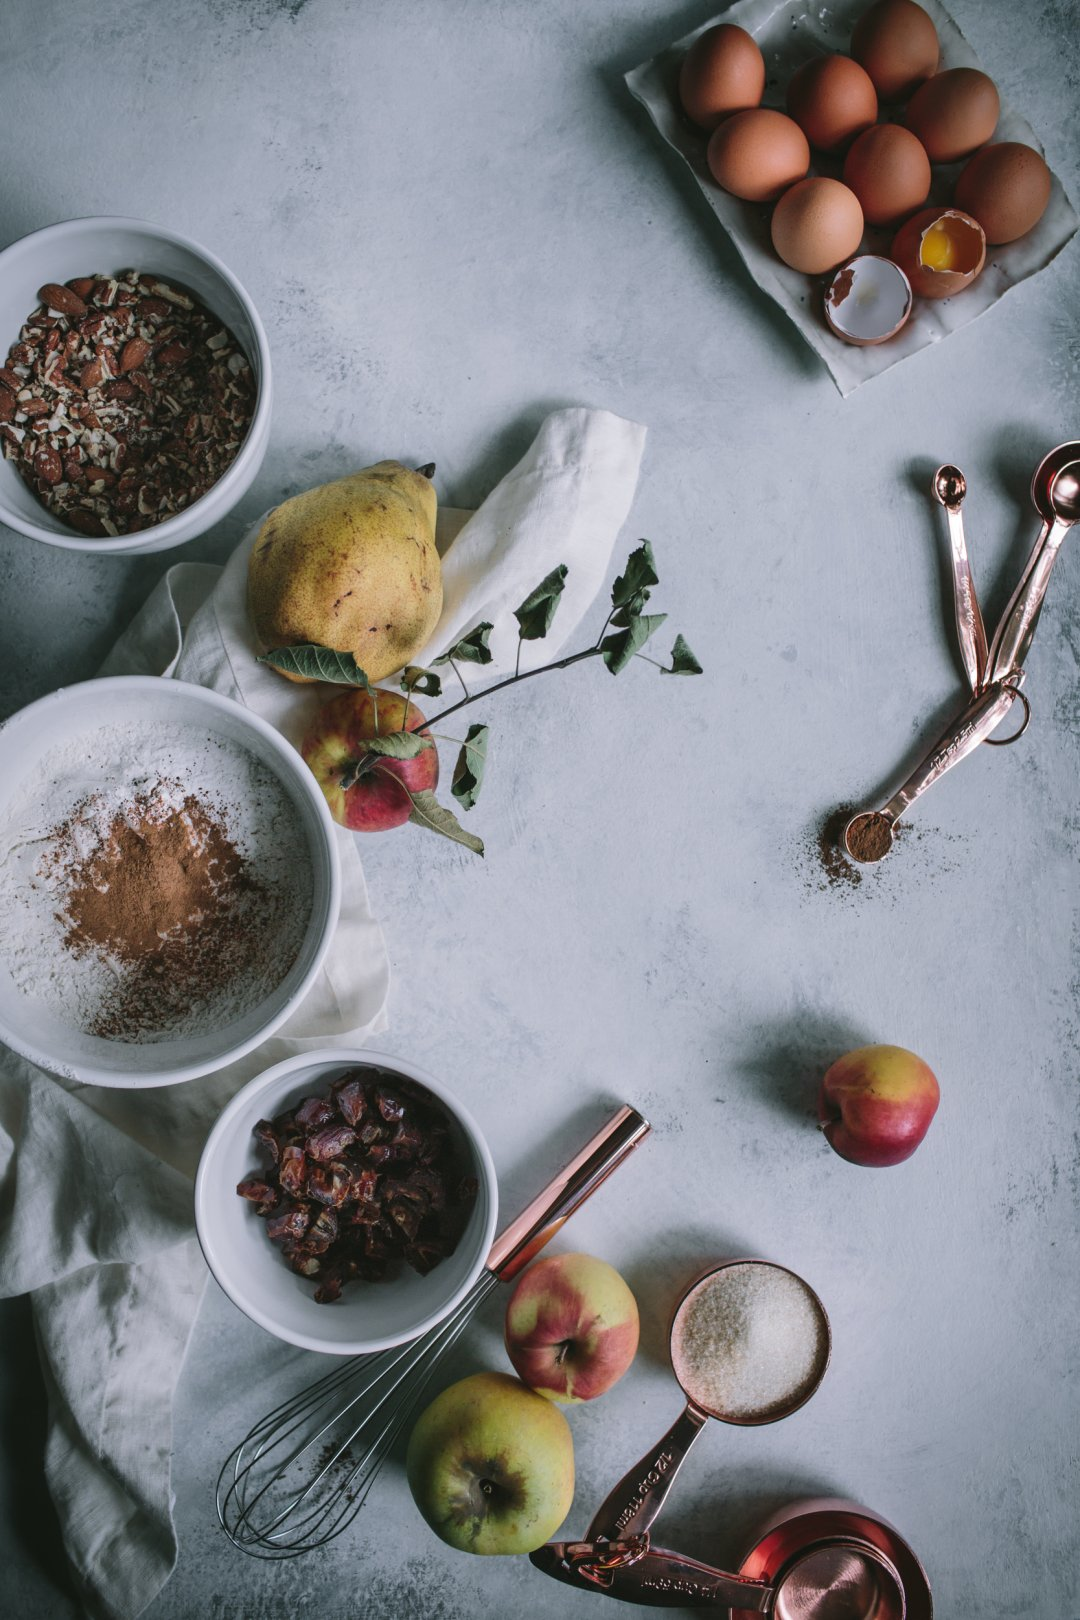 Spread of white mixing bowls and copper measuring cups with muffin ingredients, including flour, dates, chopped nuts, sugar and eggs